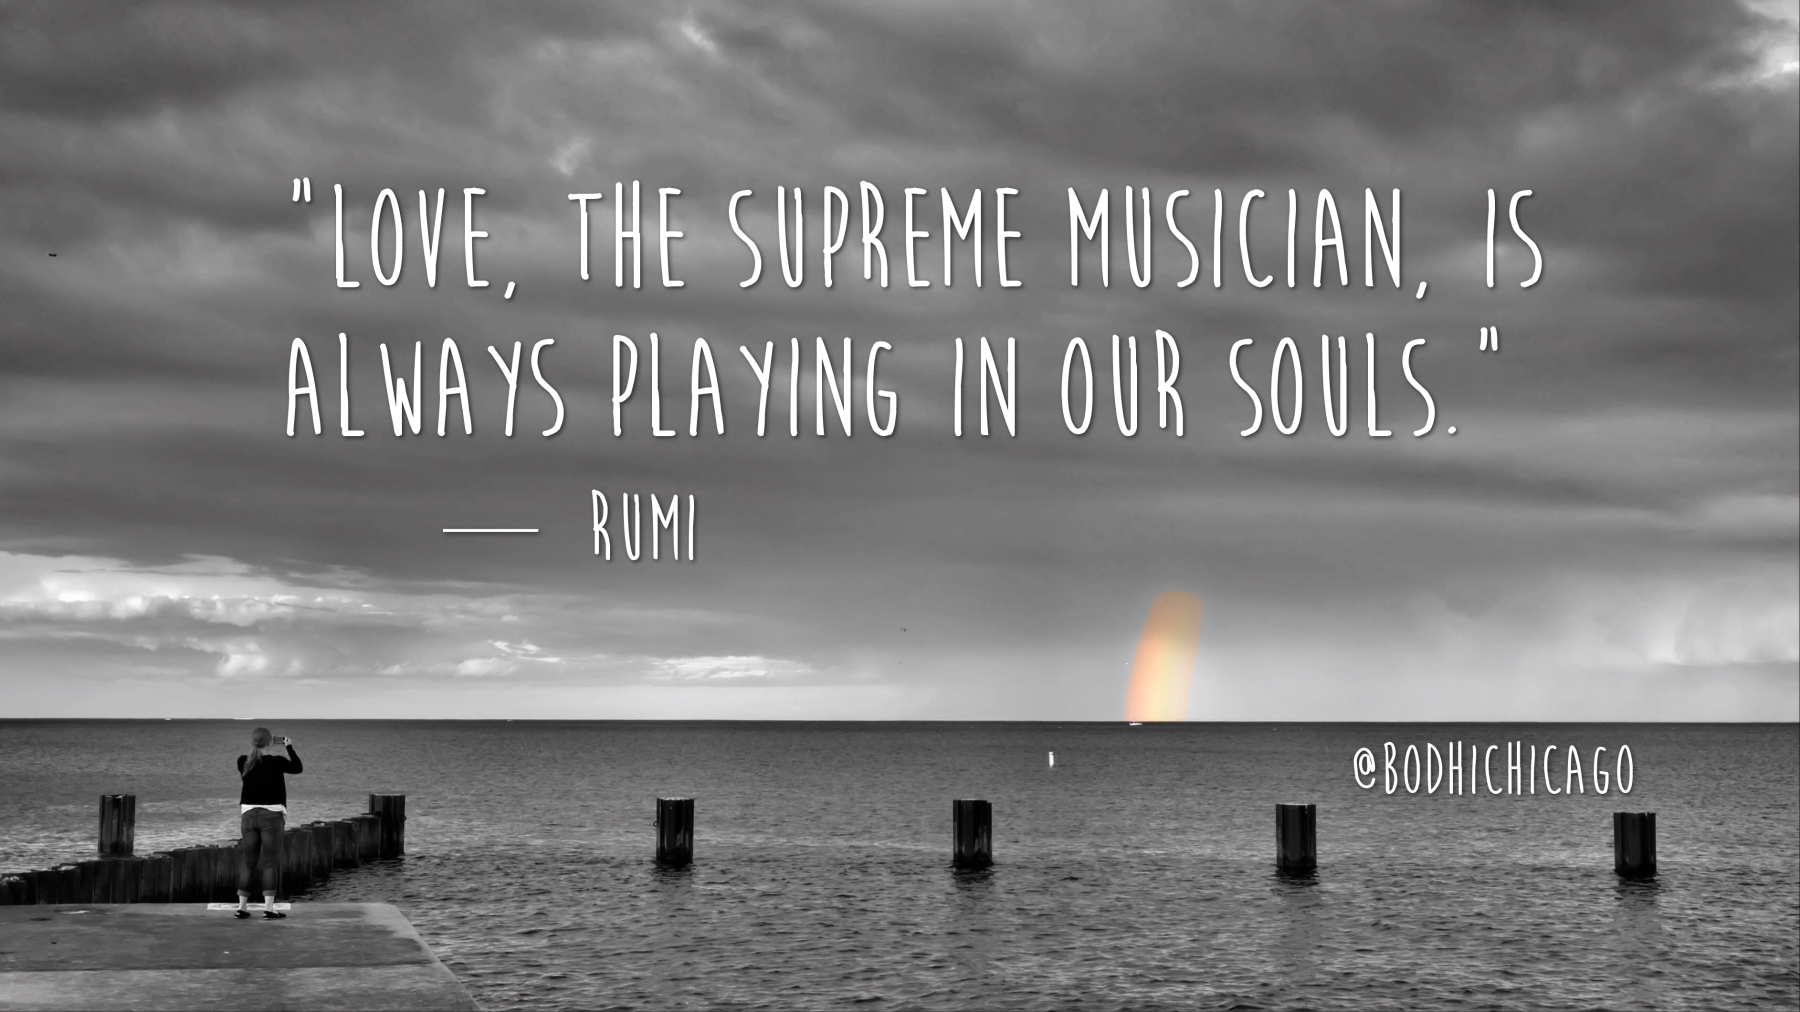 Rumi Quotes About Friendship Wednesday Wisdom Rumi On Love As The Supreme Musician  Bodhi